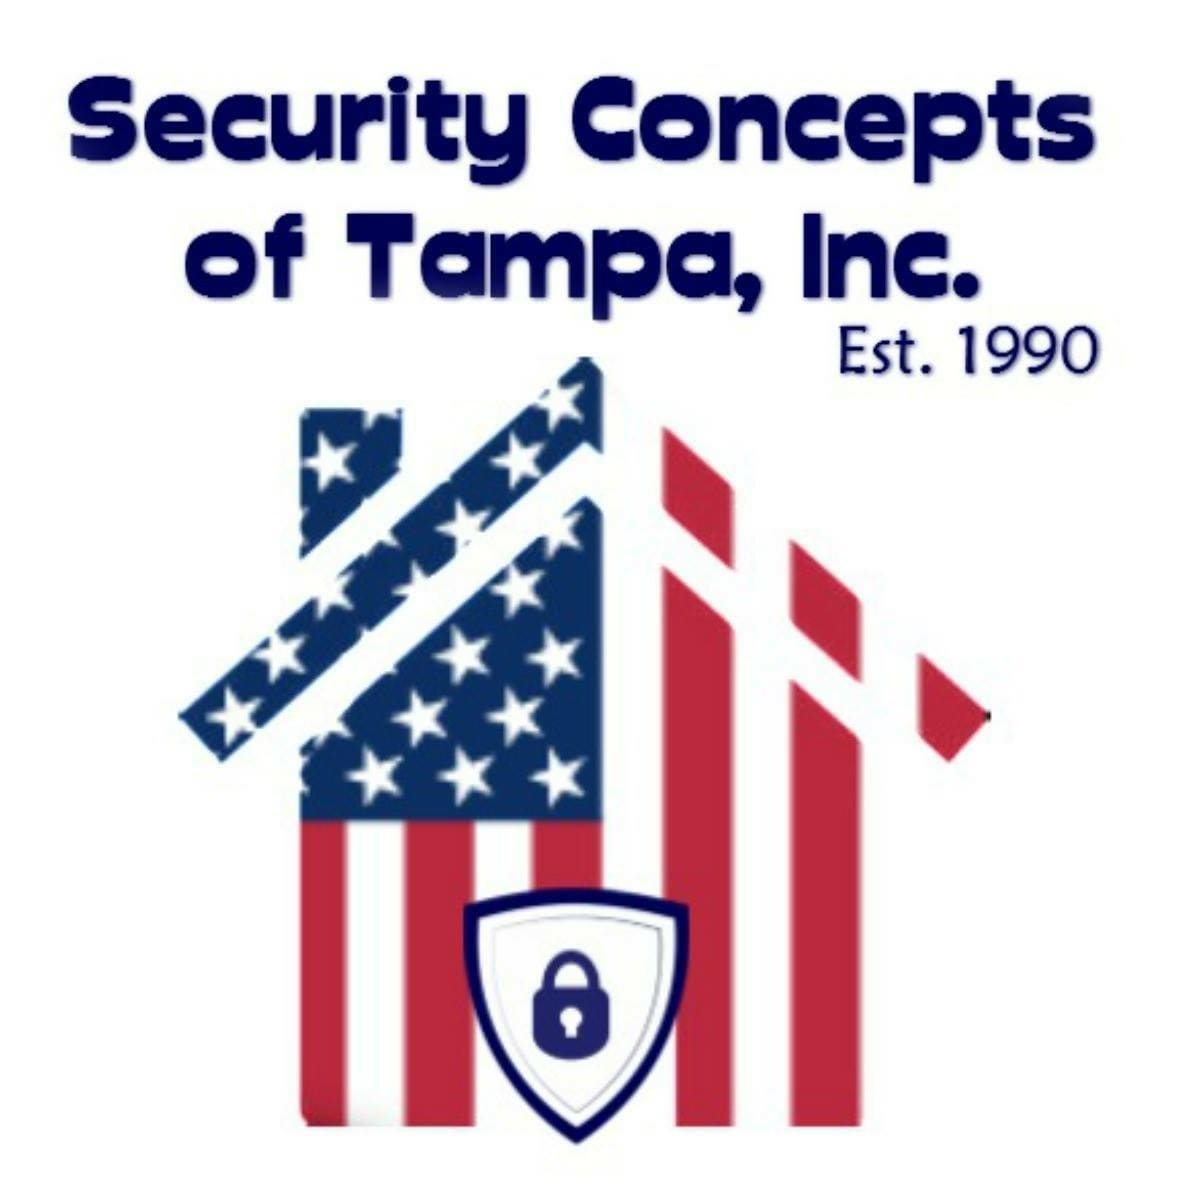 SECURITY CONCEPTS OF TAMPA